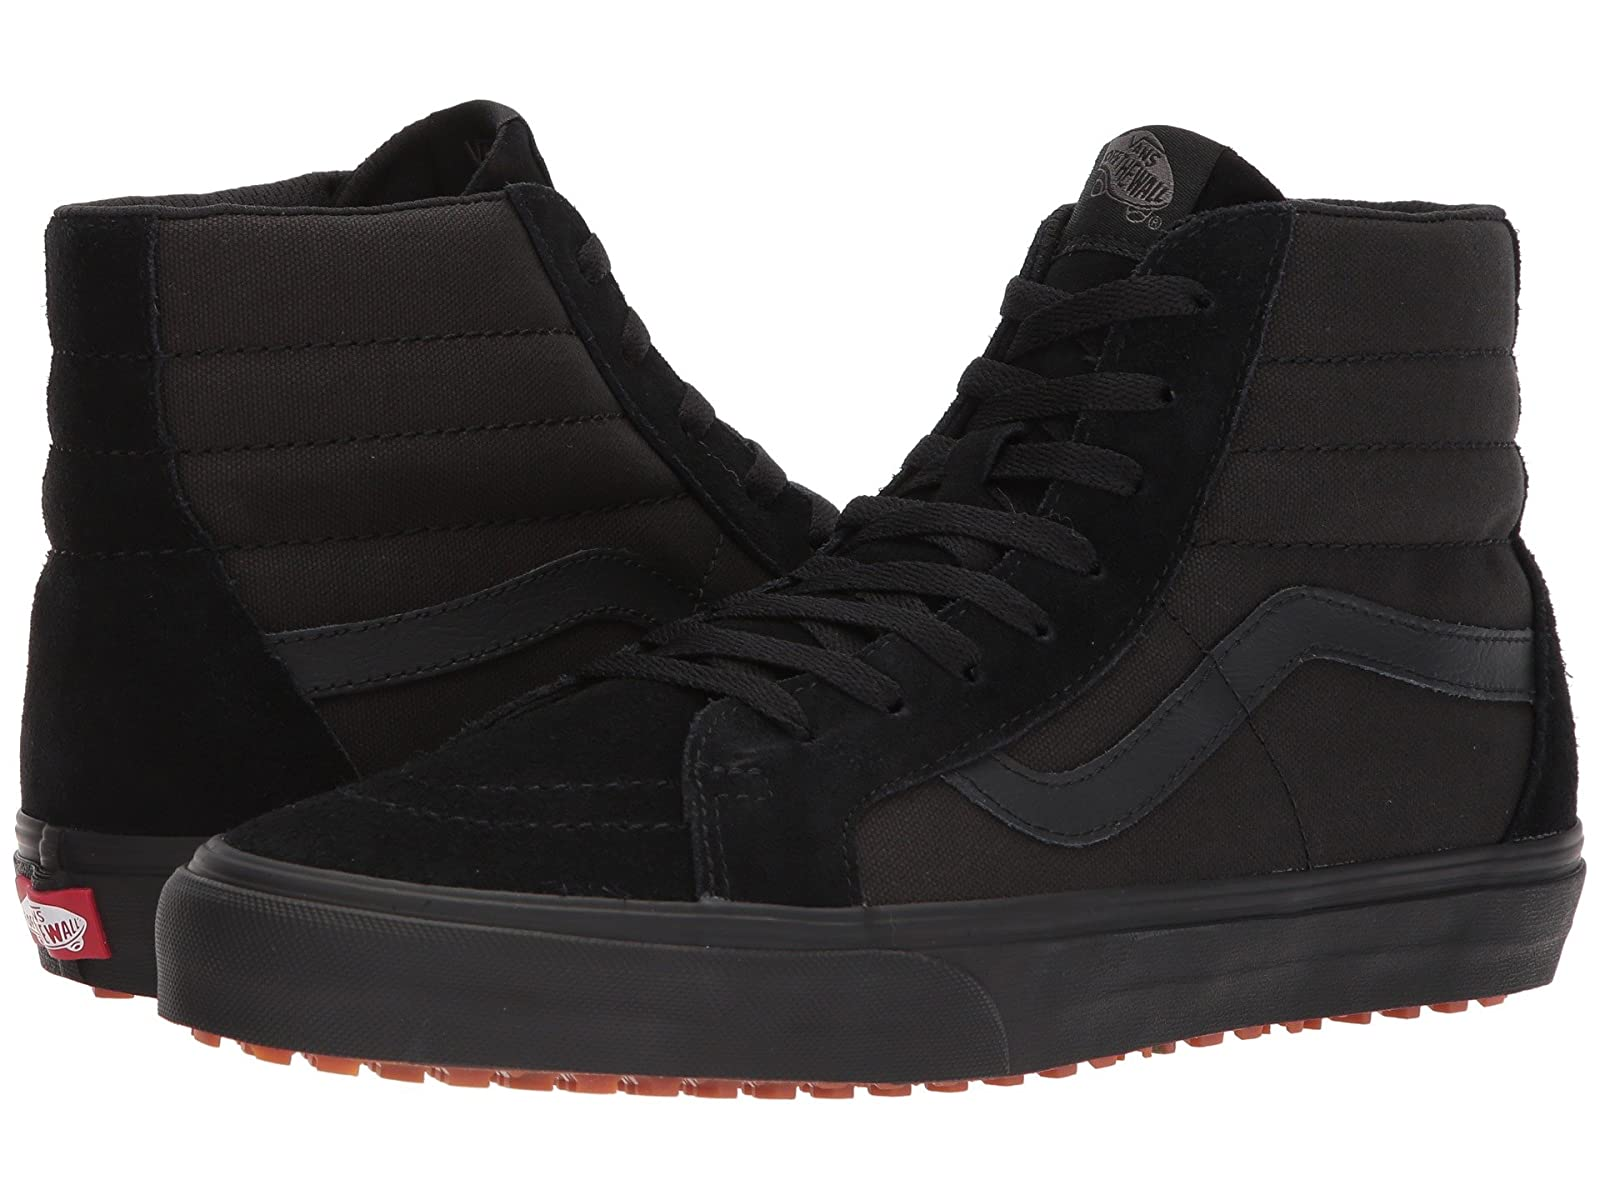 Vans Sk8-Hi Reissue UC X Made for Makers CollectionAtmospheric grades have affordable shoes